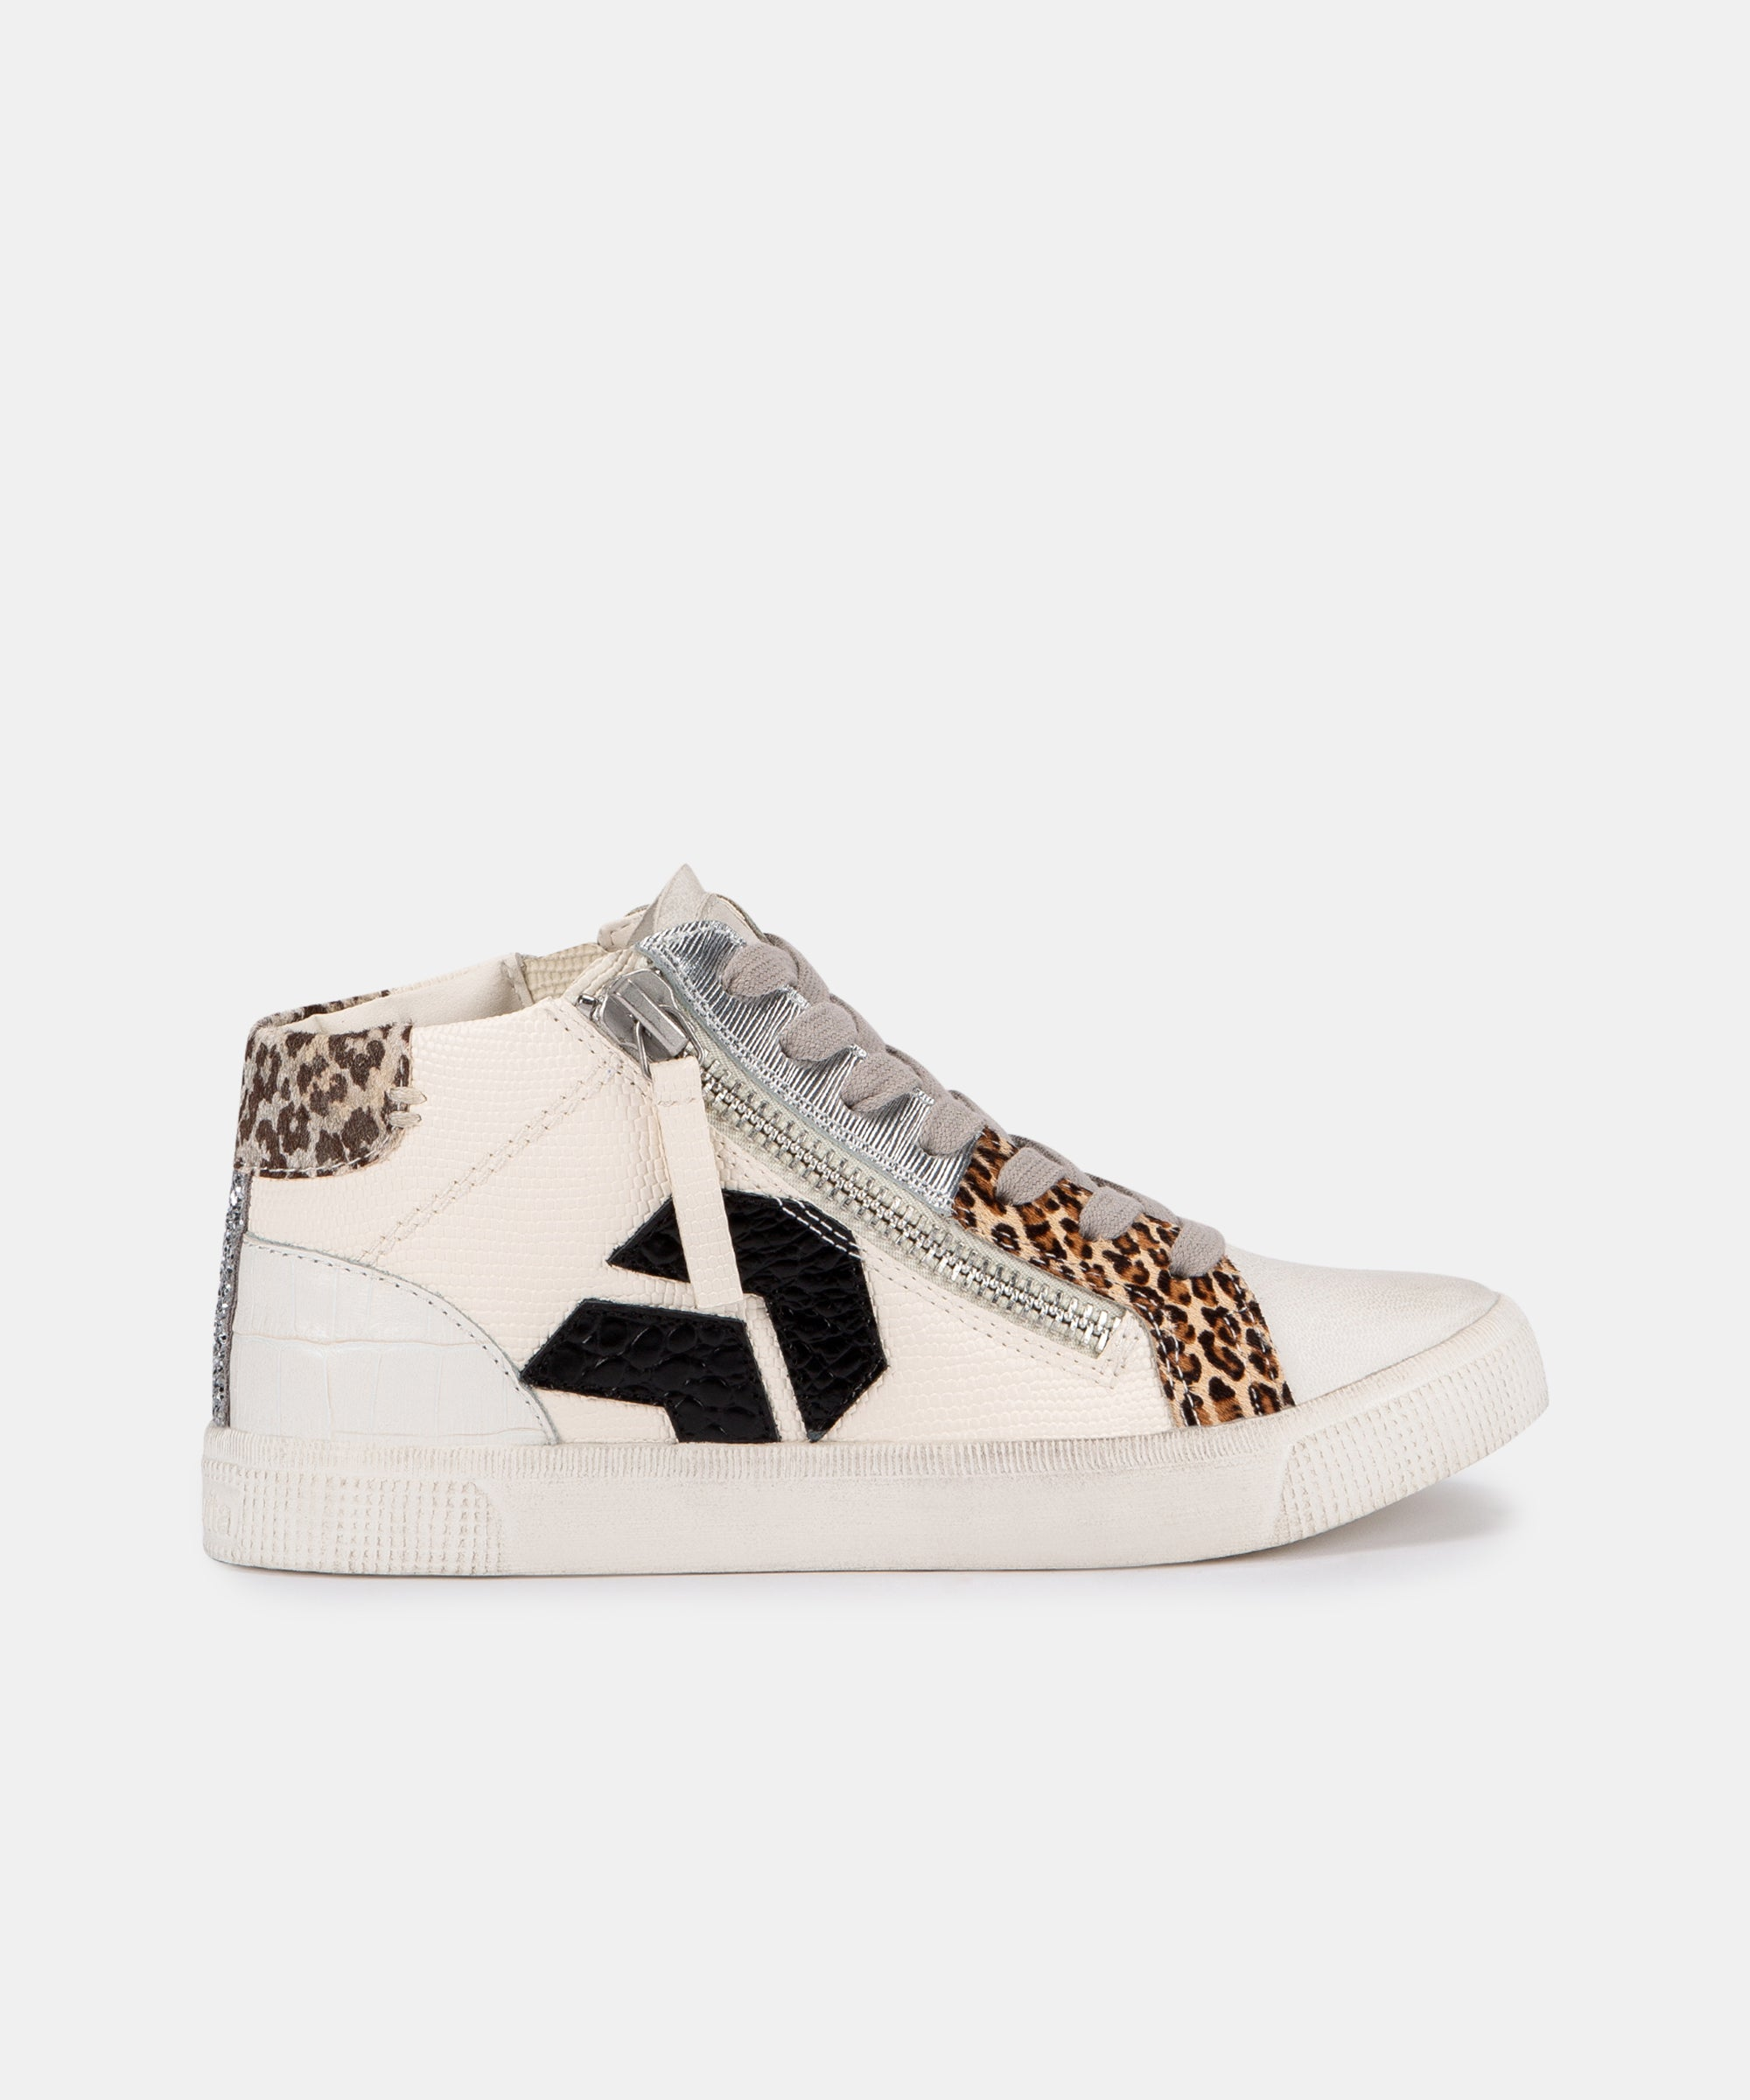 ZONYA SNEAKERS IN WHITE/BLACK EMBOSSED LIZARD